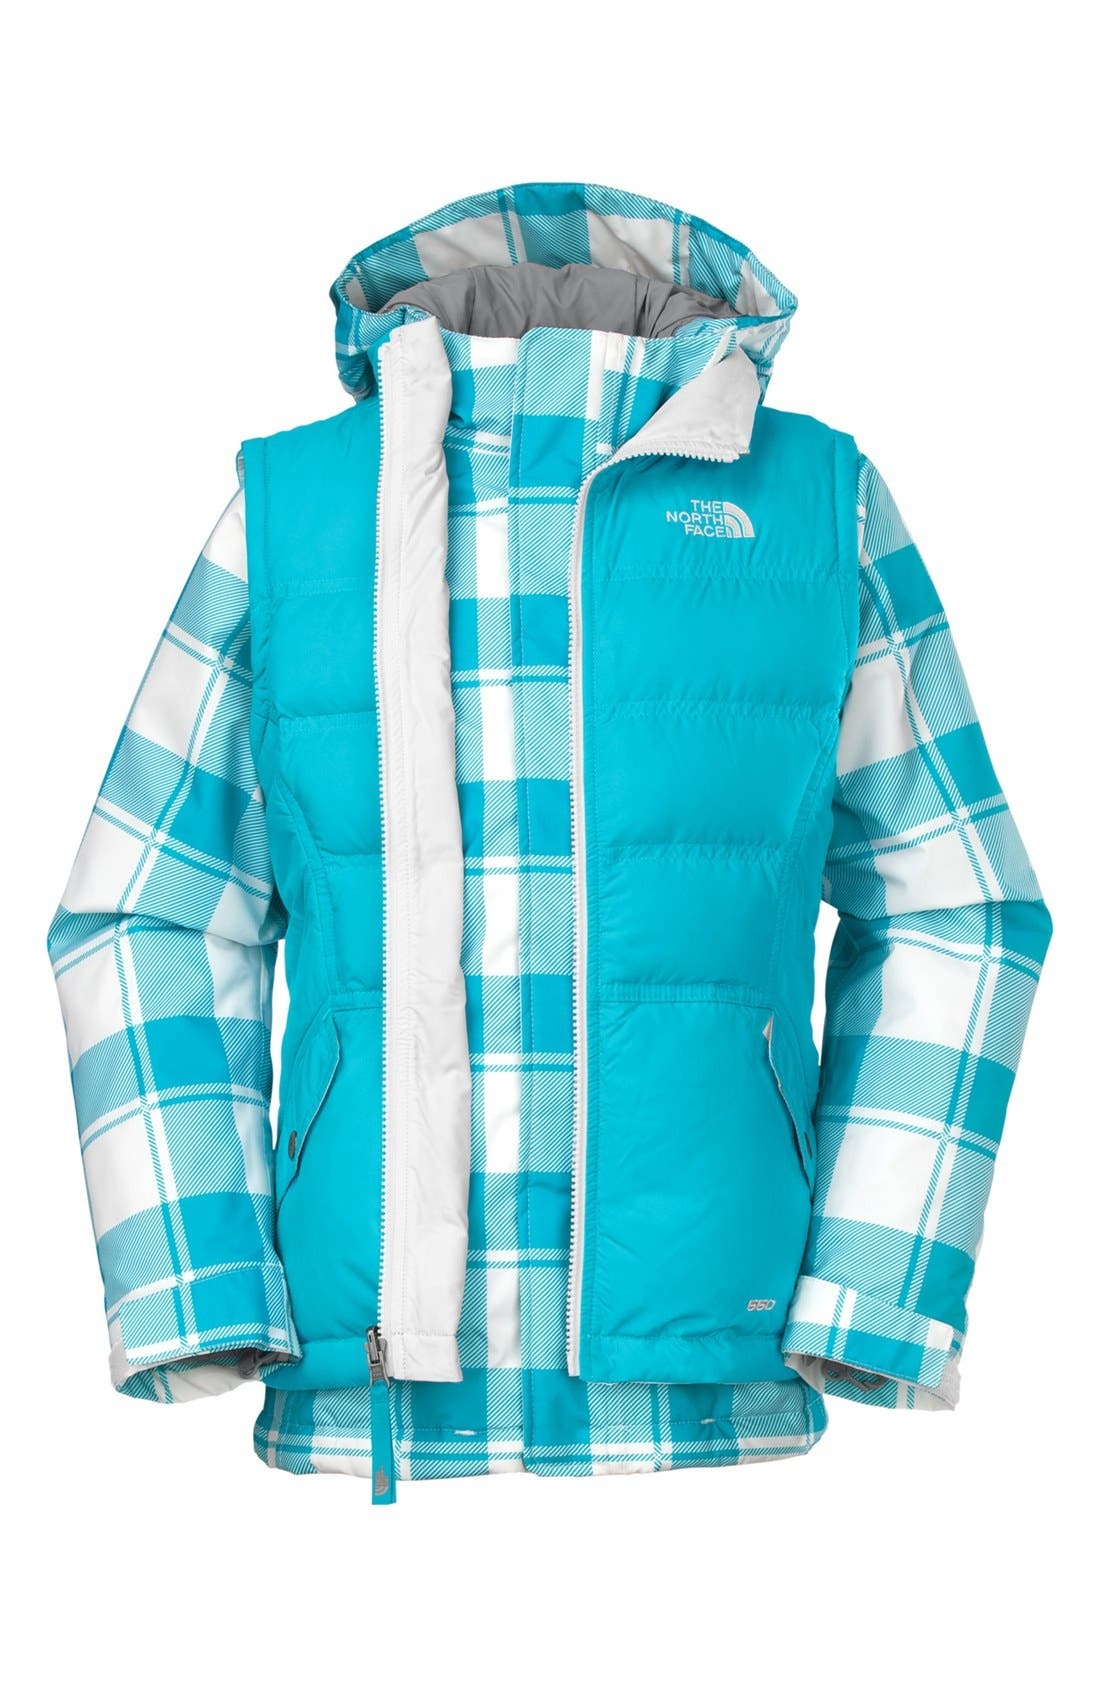 Alternate Image 1 Selected - The North Face 'Vestamatic' TriClimate® 3-in-1 Jacket (Little Girls & Big Girls)